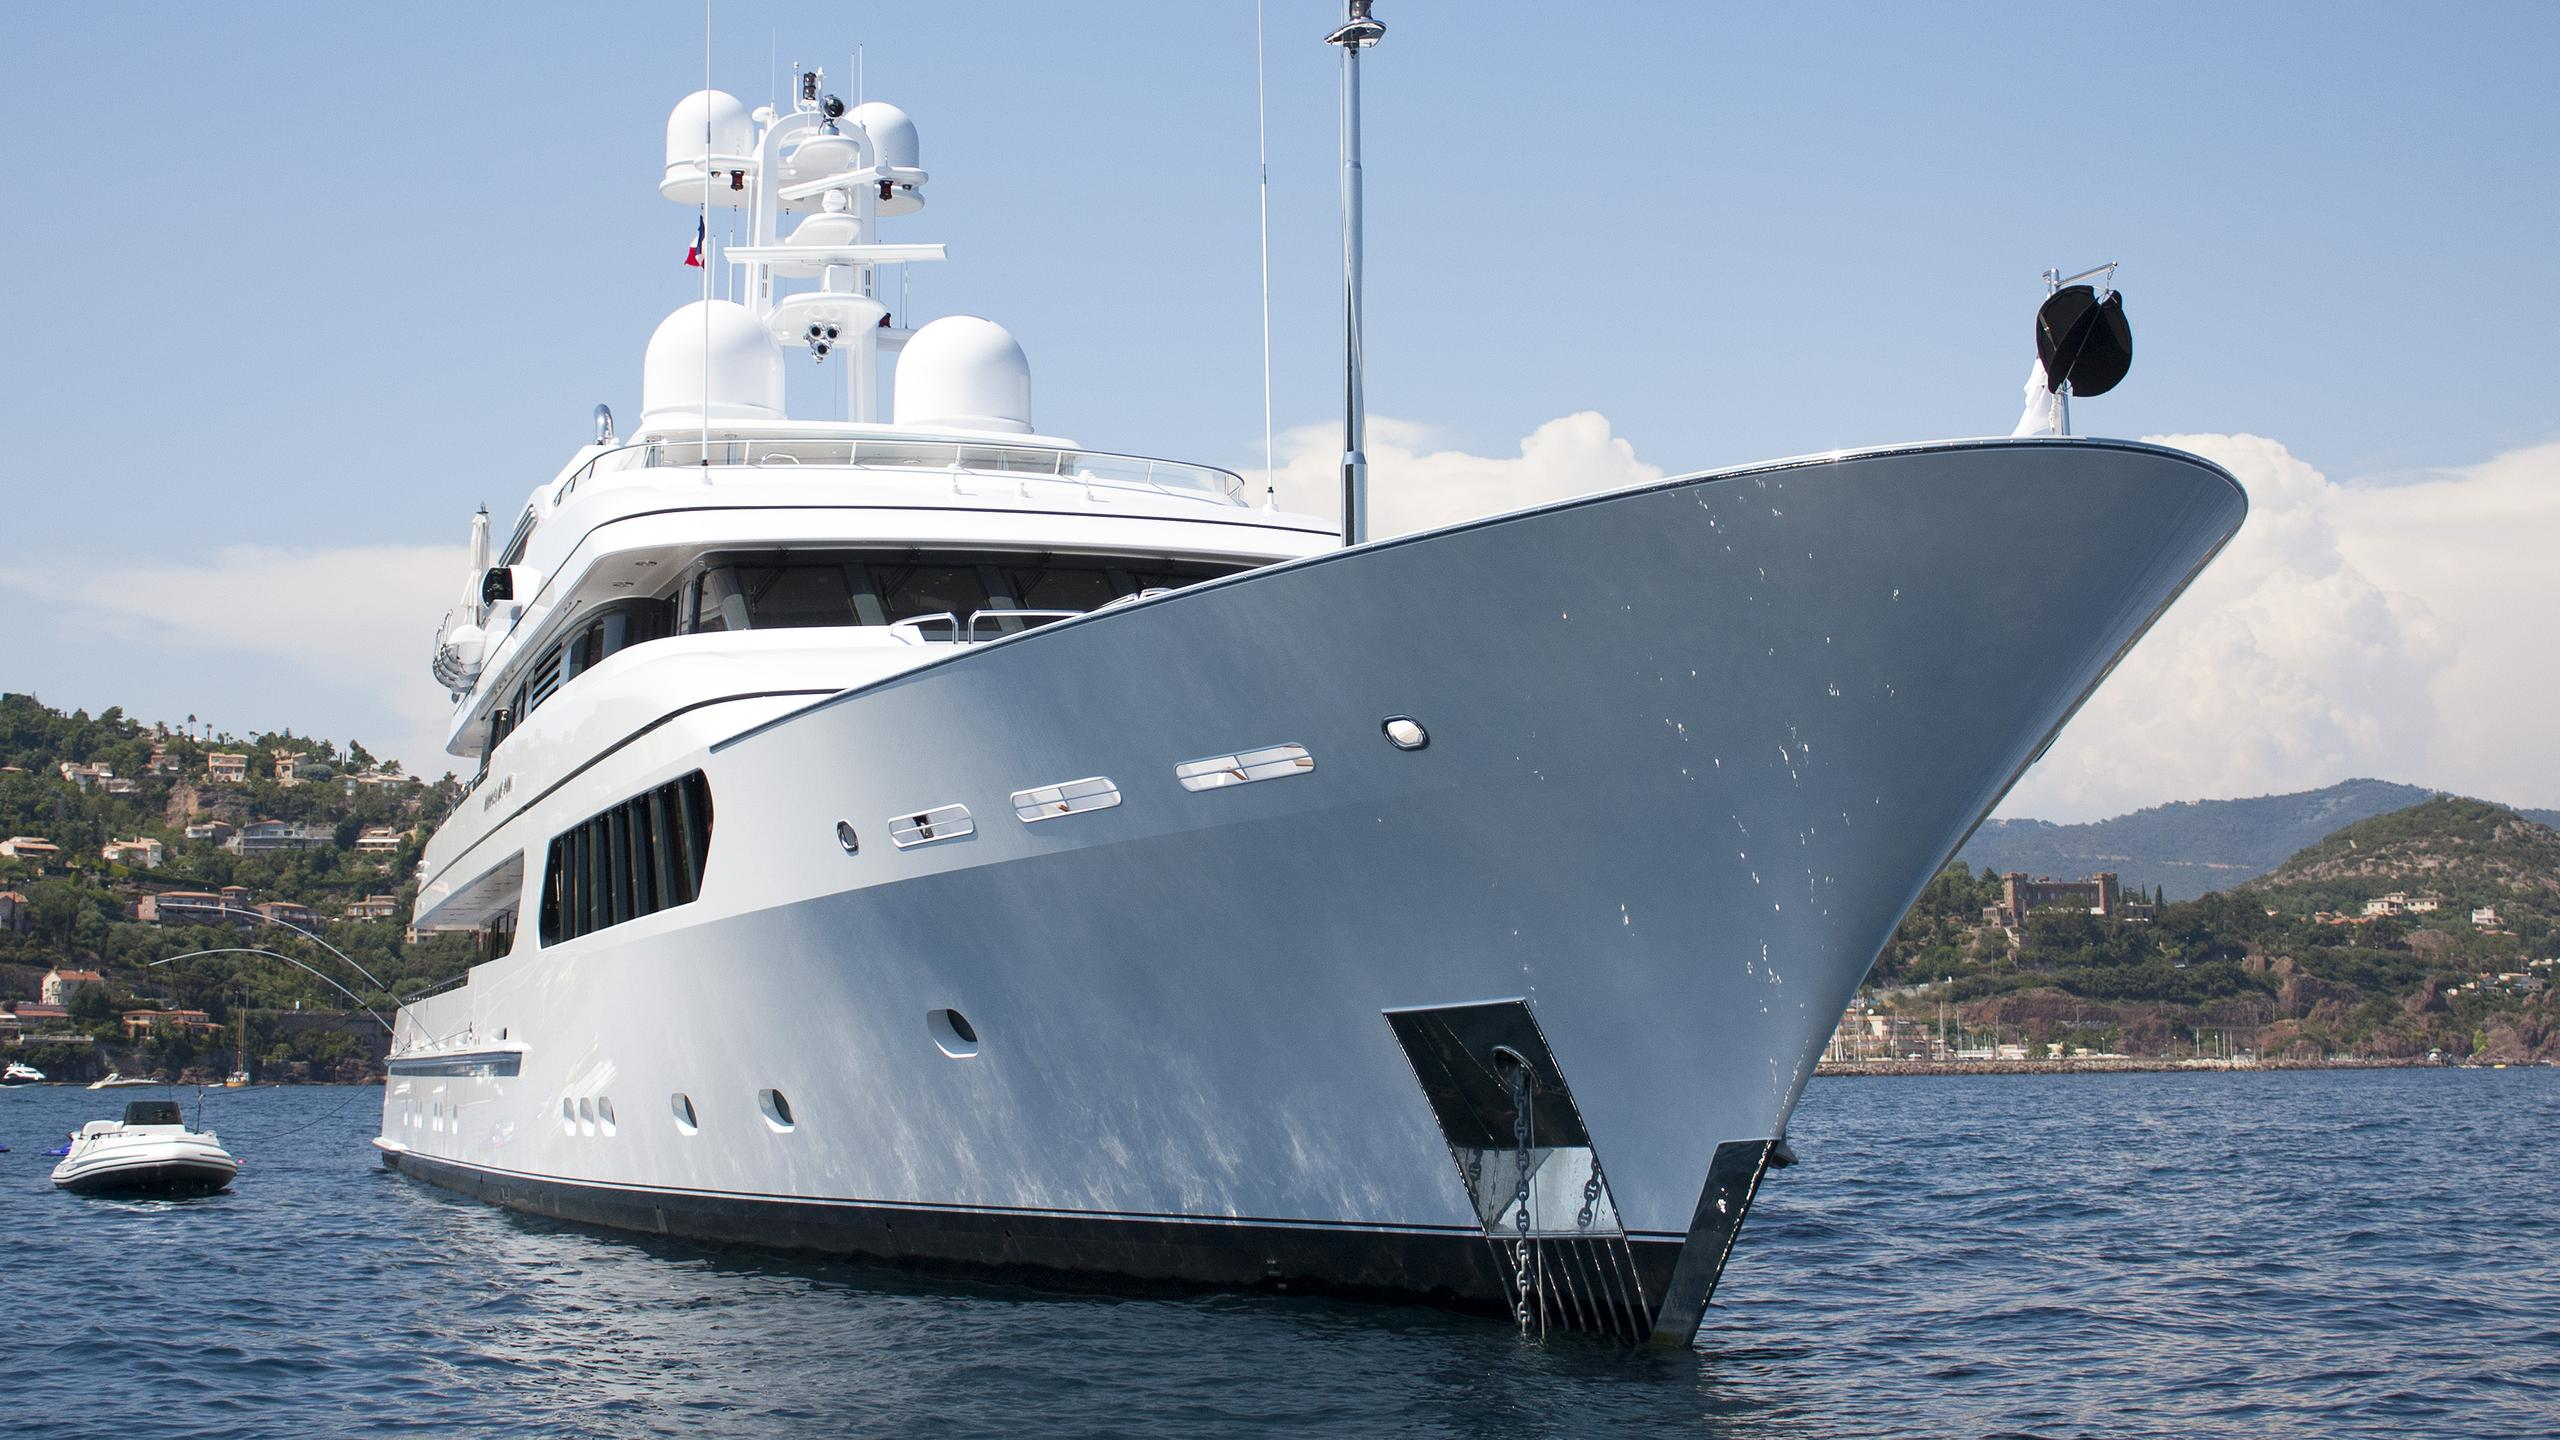 hurricane-run-motor-yacht-feadship-2009-53m-bow